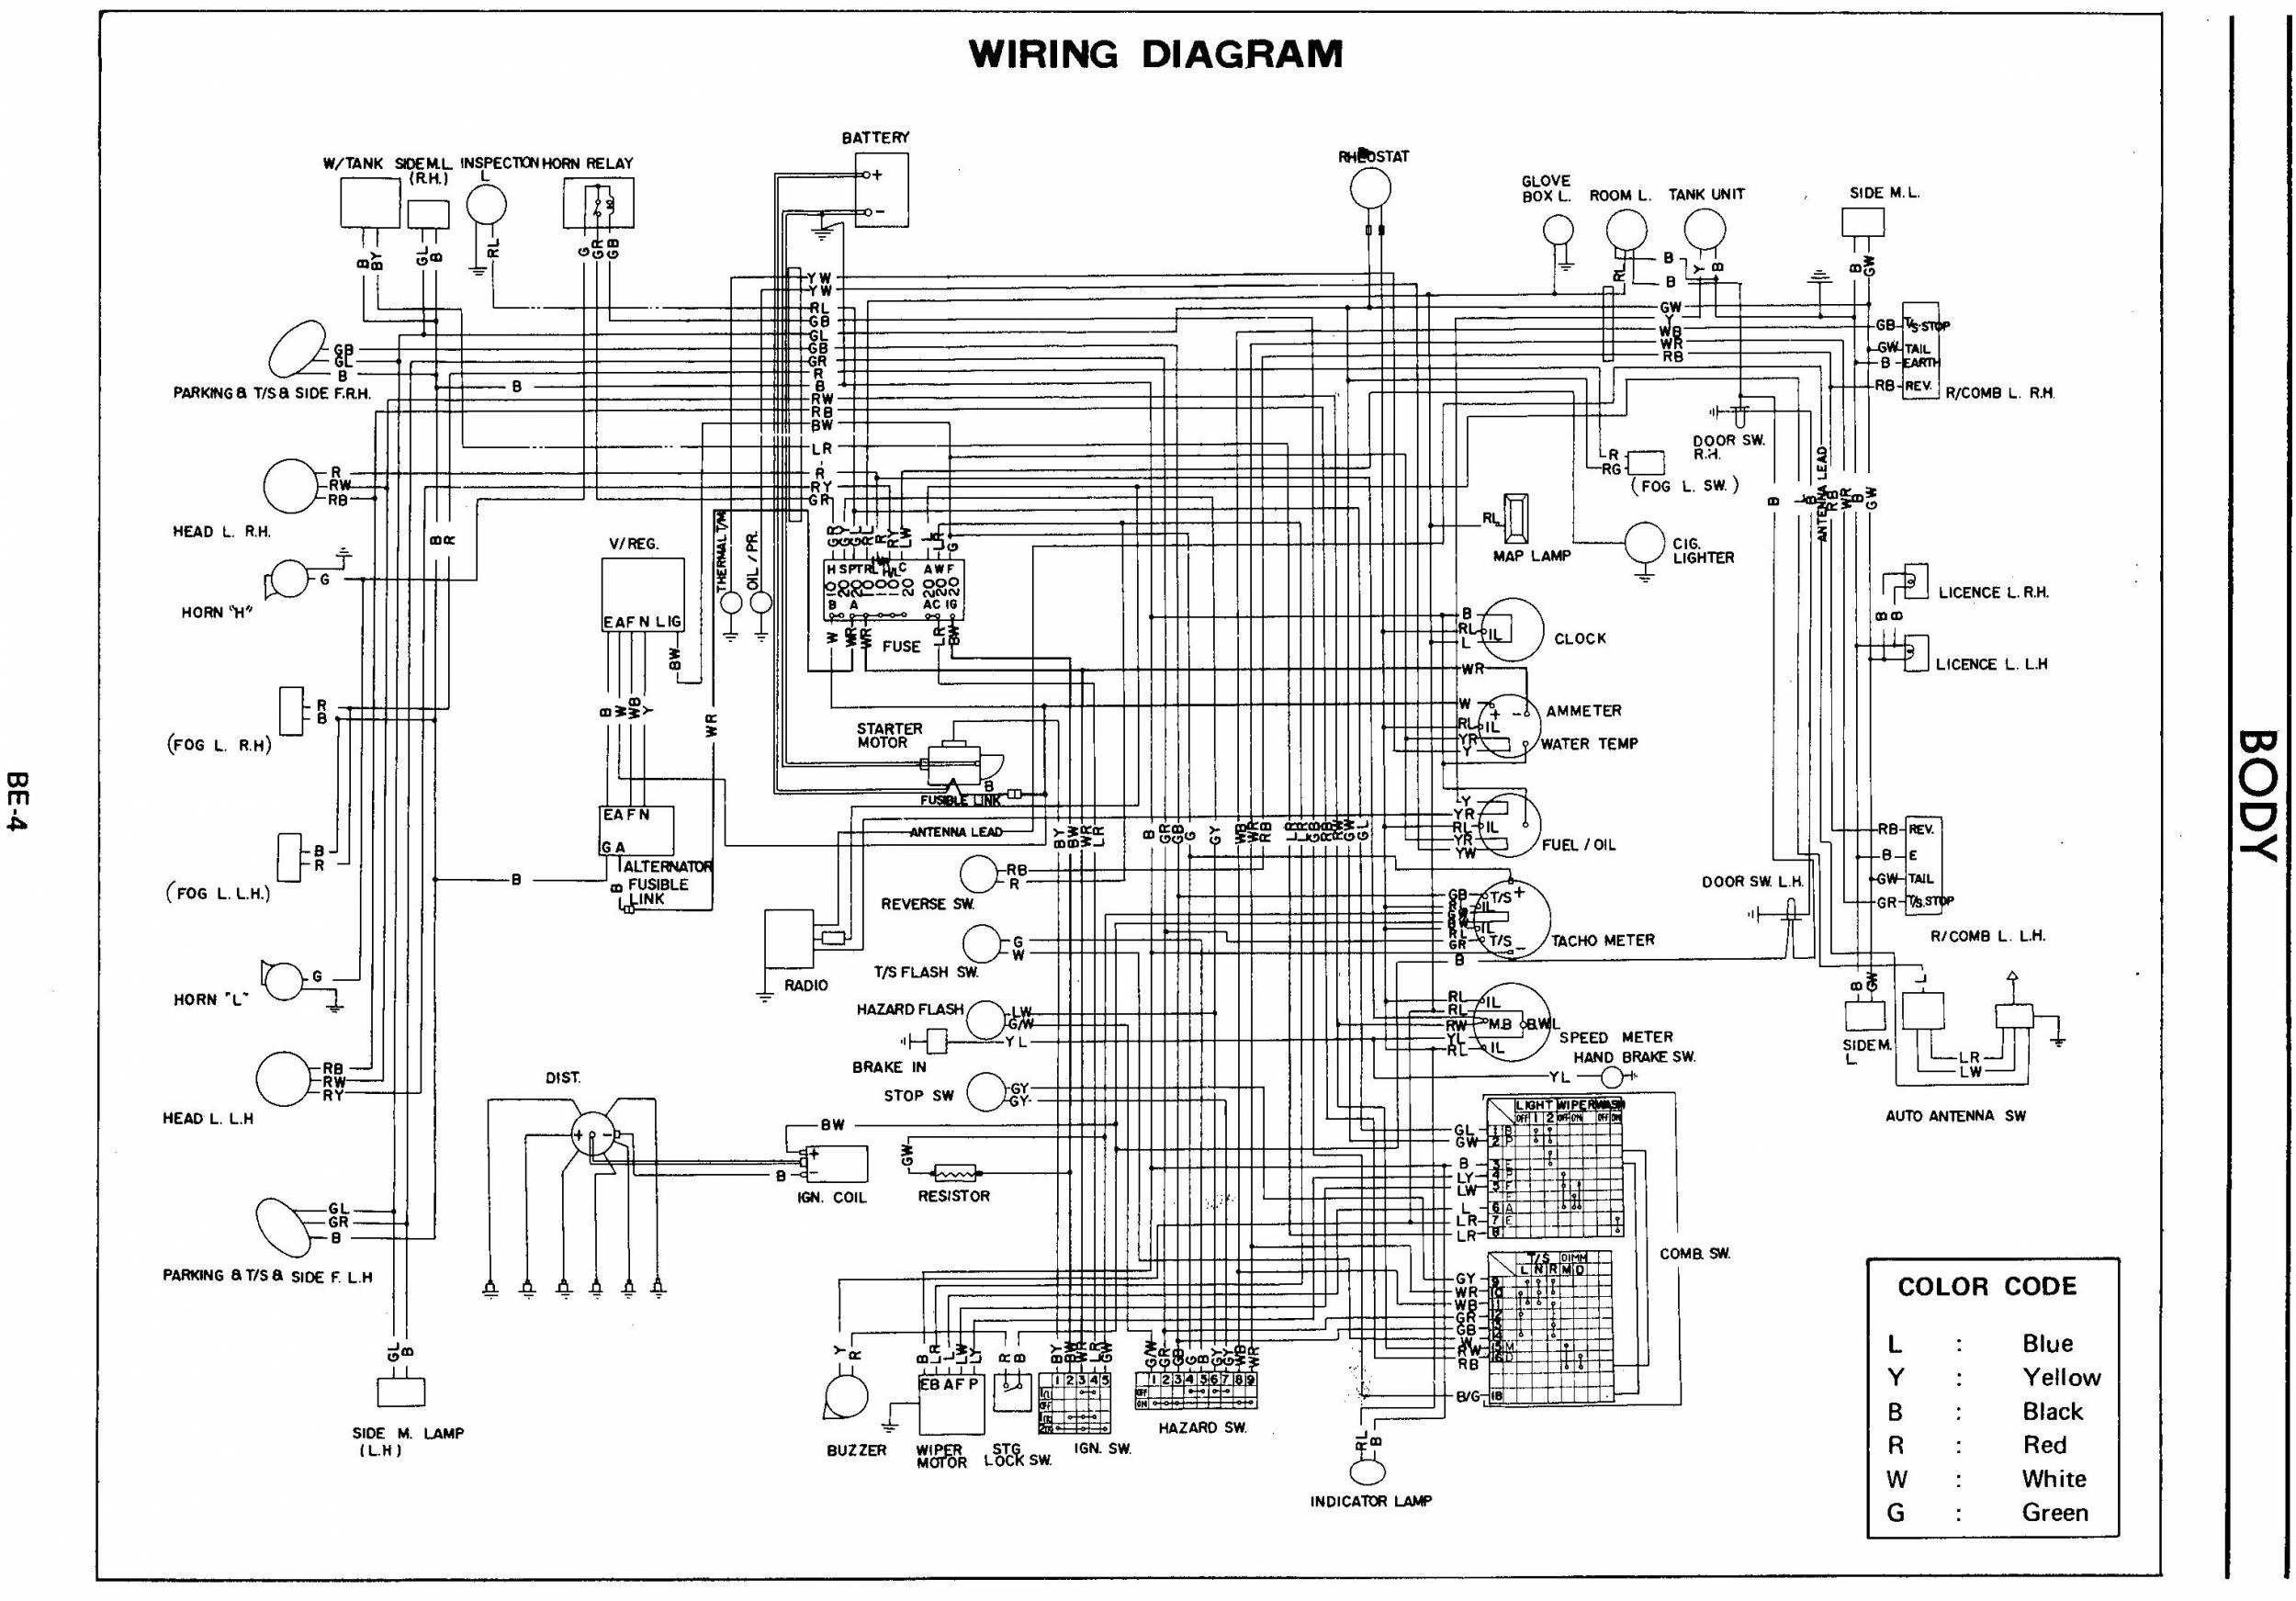 Mercedes Benz Wiring Diagram - Mercedes Alternator Wiring Diagram Fresh Mercedes Benz Wiring Diagram Free Free Image Wiring Diagram Engine 18j